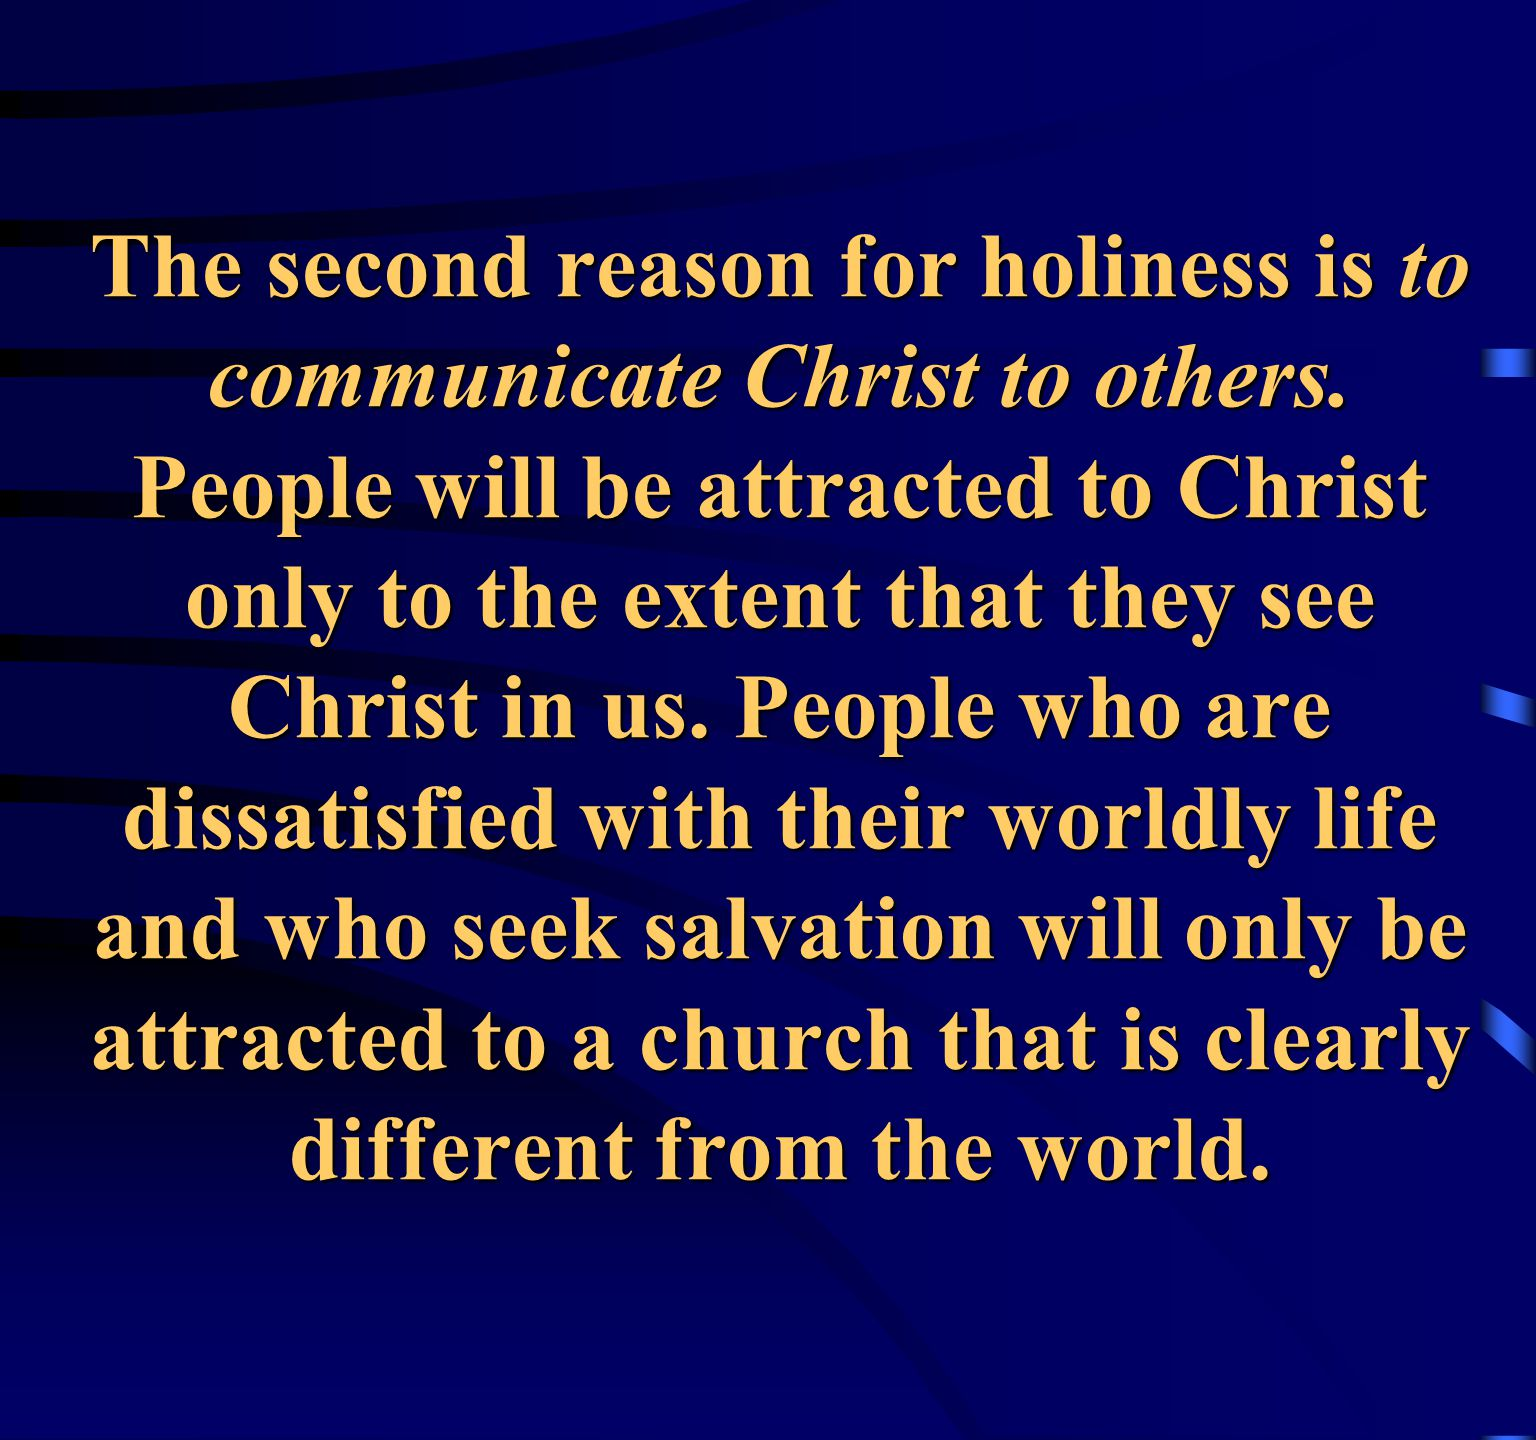 The second reason for holiness is to communicate Christ to others.